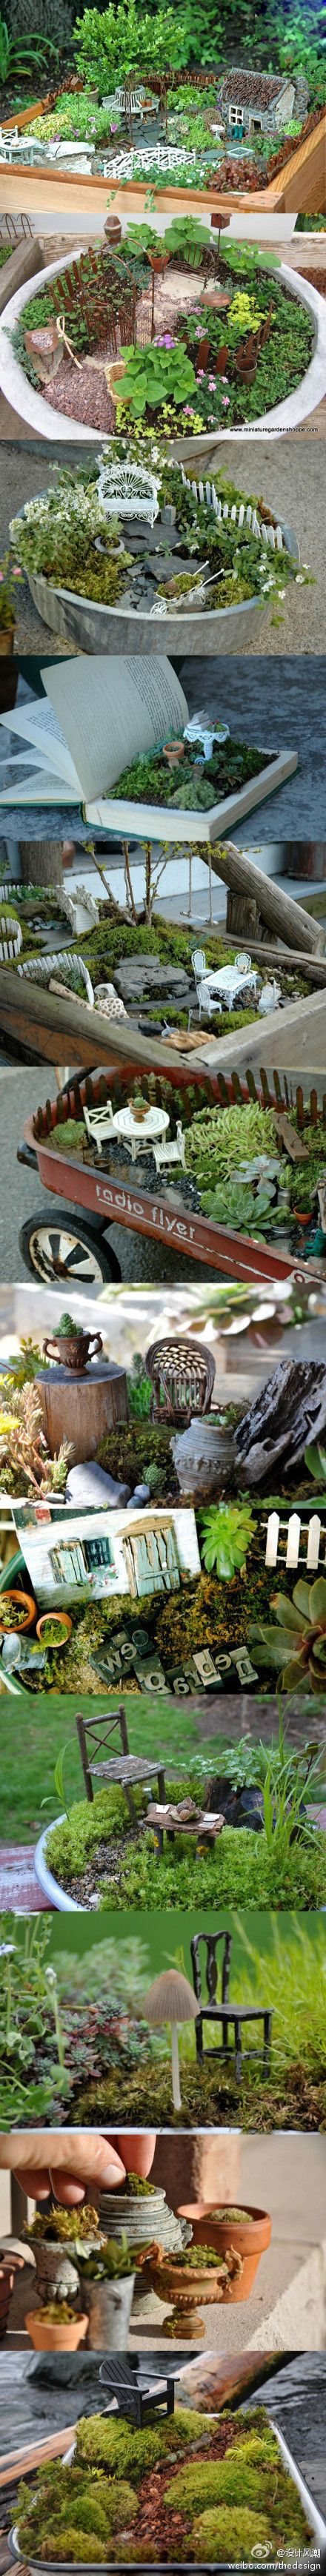 Miniature gardens, amazing!